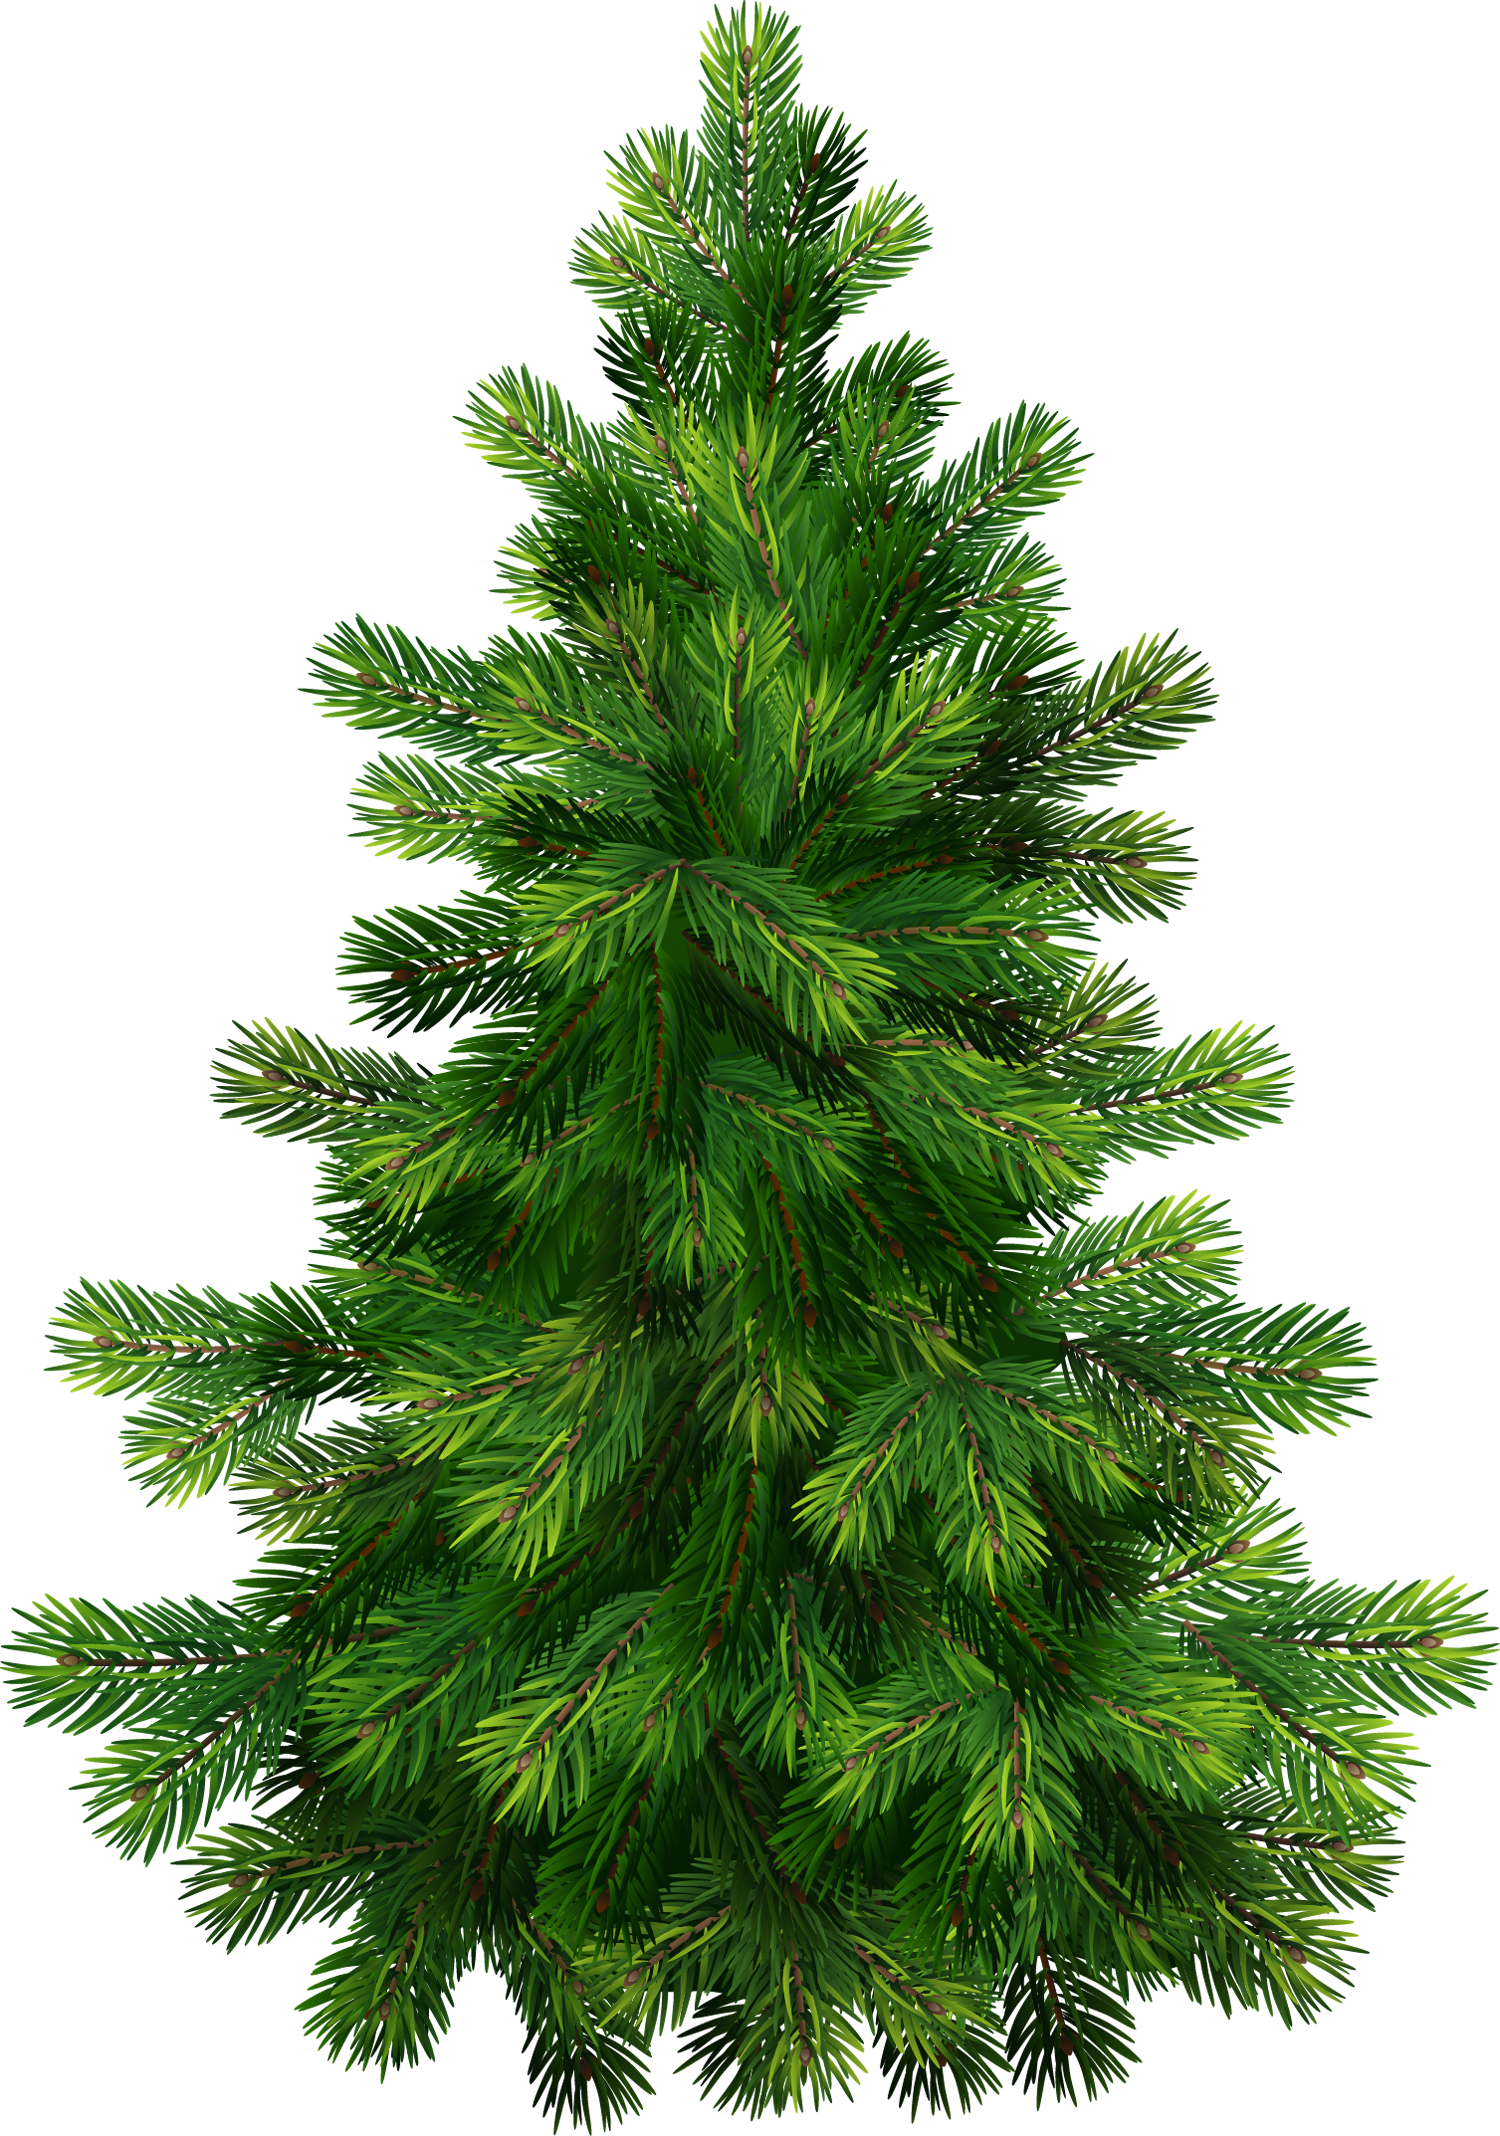 Pine clipart fir tree. Trees google search flowers